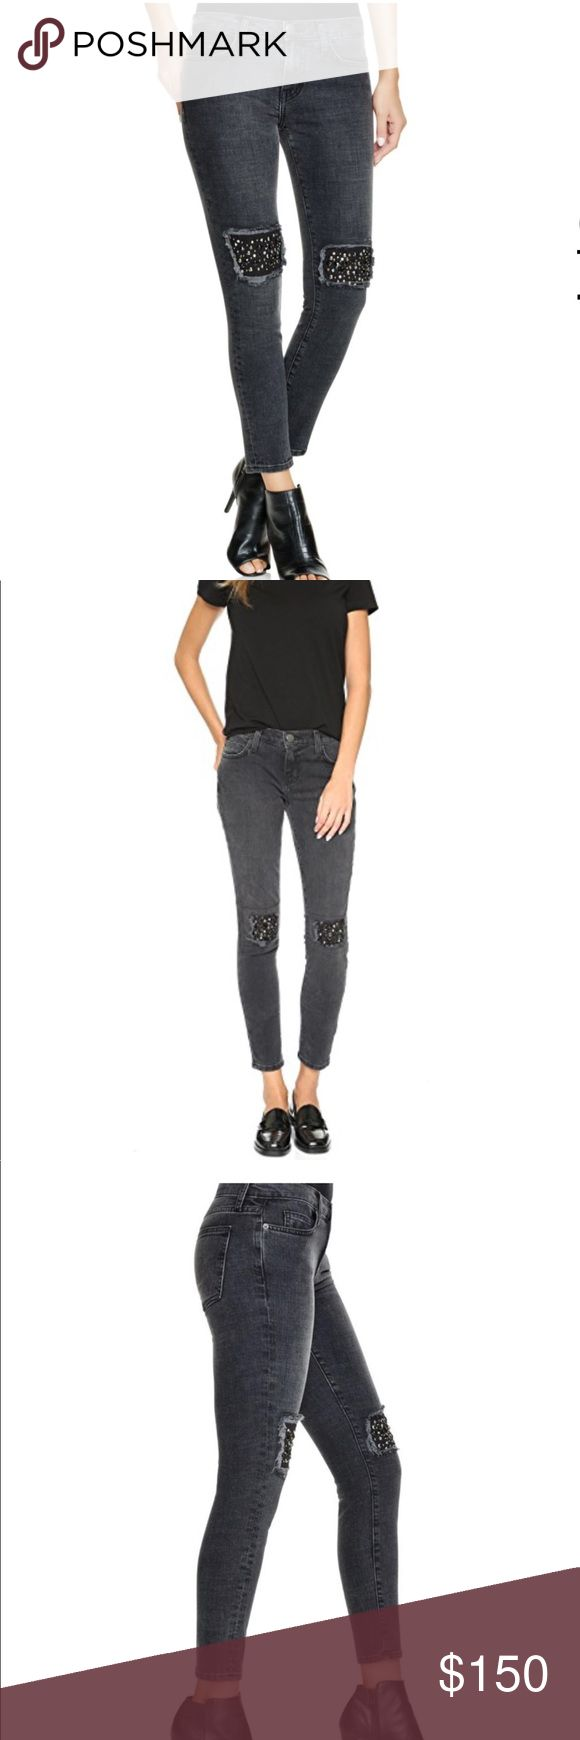 """CURRENT/ELLIOTT the stiletto skinny black jeans CURRENT/ELLIOTT the stiletto skinny black jeans. NWT. Size 25  The Stiletto: True 80's skinny that hugs every curve. Cropped at the ankle to show off your favorite shoes. Zip fly with button closure, 98% cotton 2% elastane. Embellishments at knees. Machine wash cold inside out, tumble low. Color is Nighthouse and is a washed out black.   Length: 35.5"""" Rise: 8"""" Waist: approx 14.5"""" Current/Elliott Jeans Ankle & Cropped"""